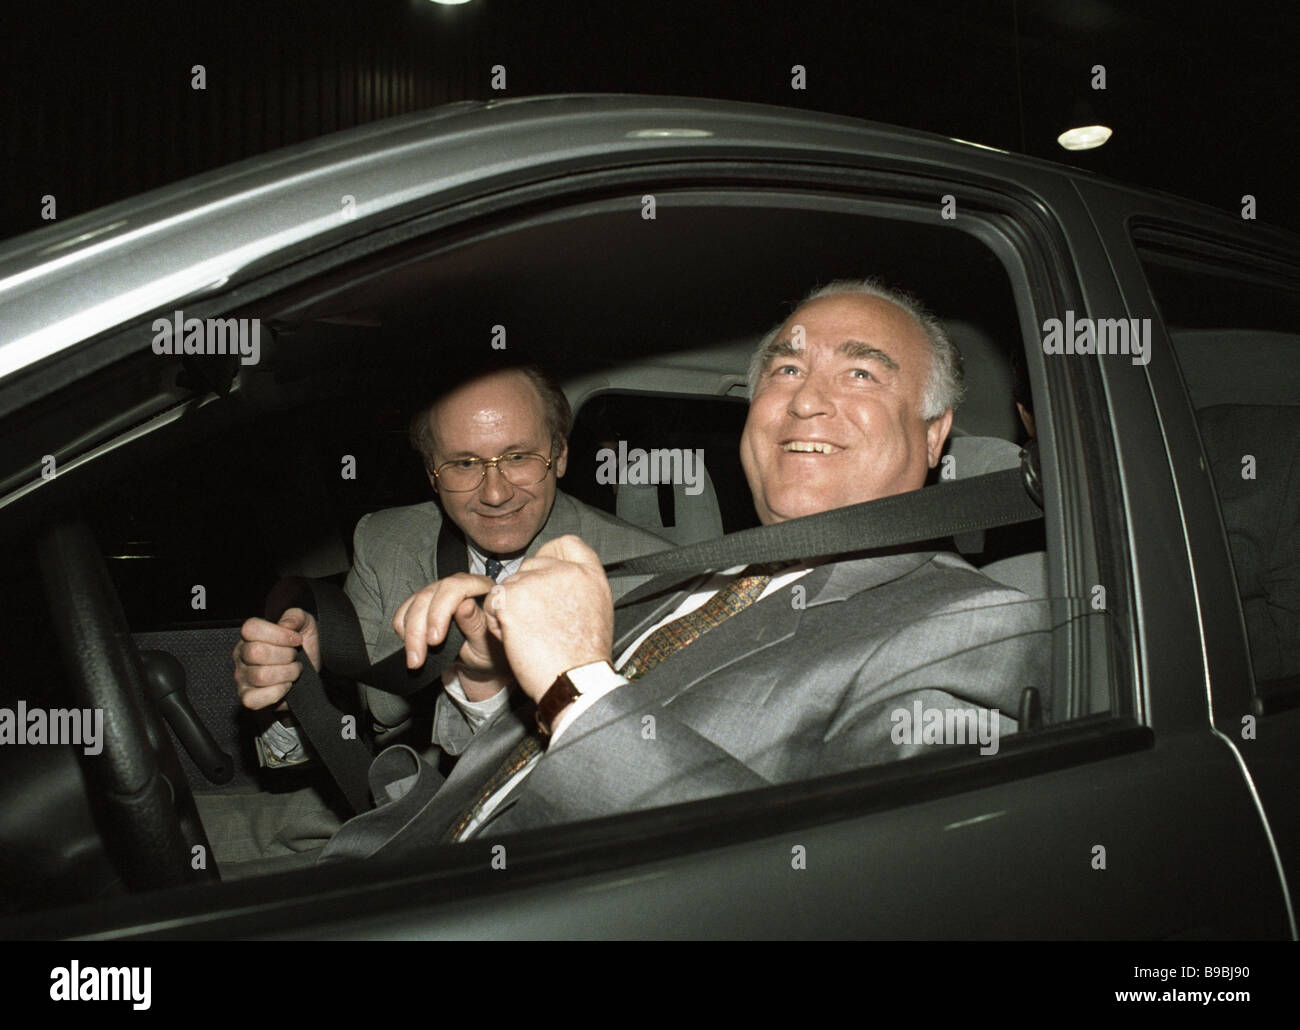 Russian Prime Minister Viktor Chernomyrdin at the testing area of General Motors factory Stock Photo